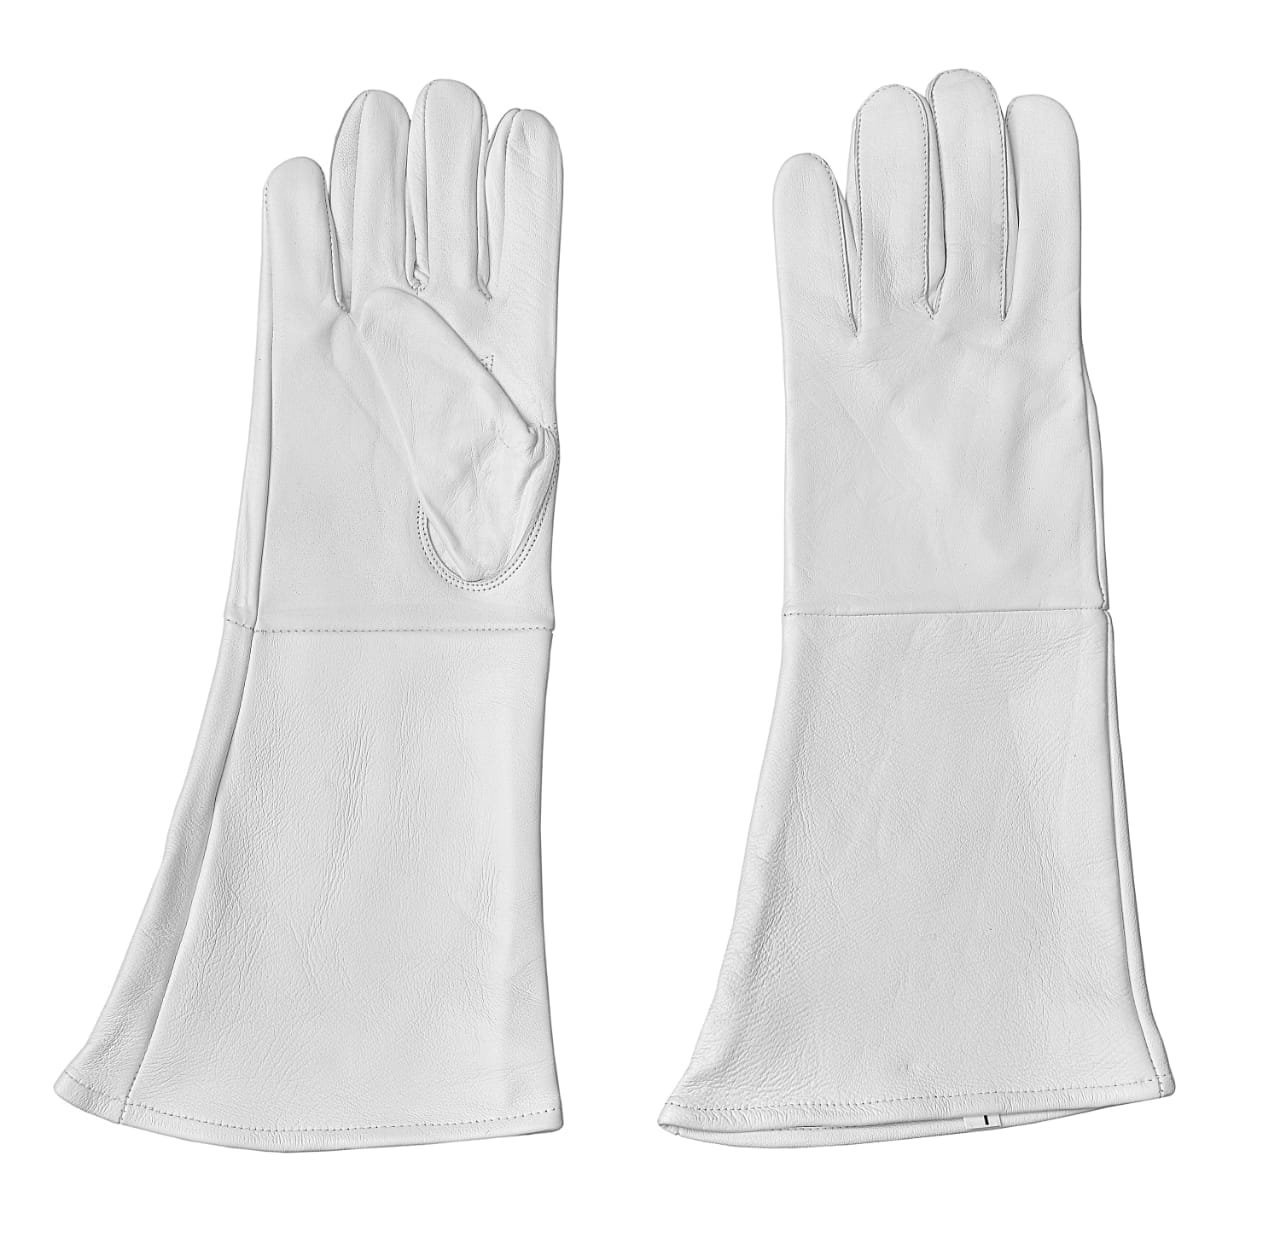 White Leather Gauntlet Medieval gloves long arm cuff (X-Large) by Gloves 007